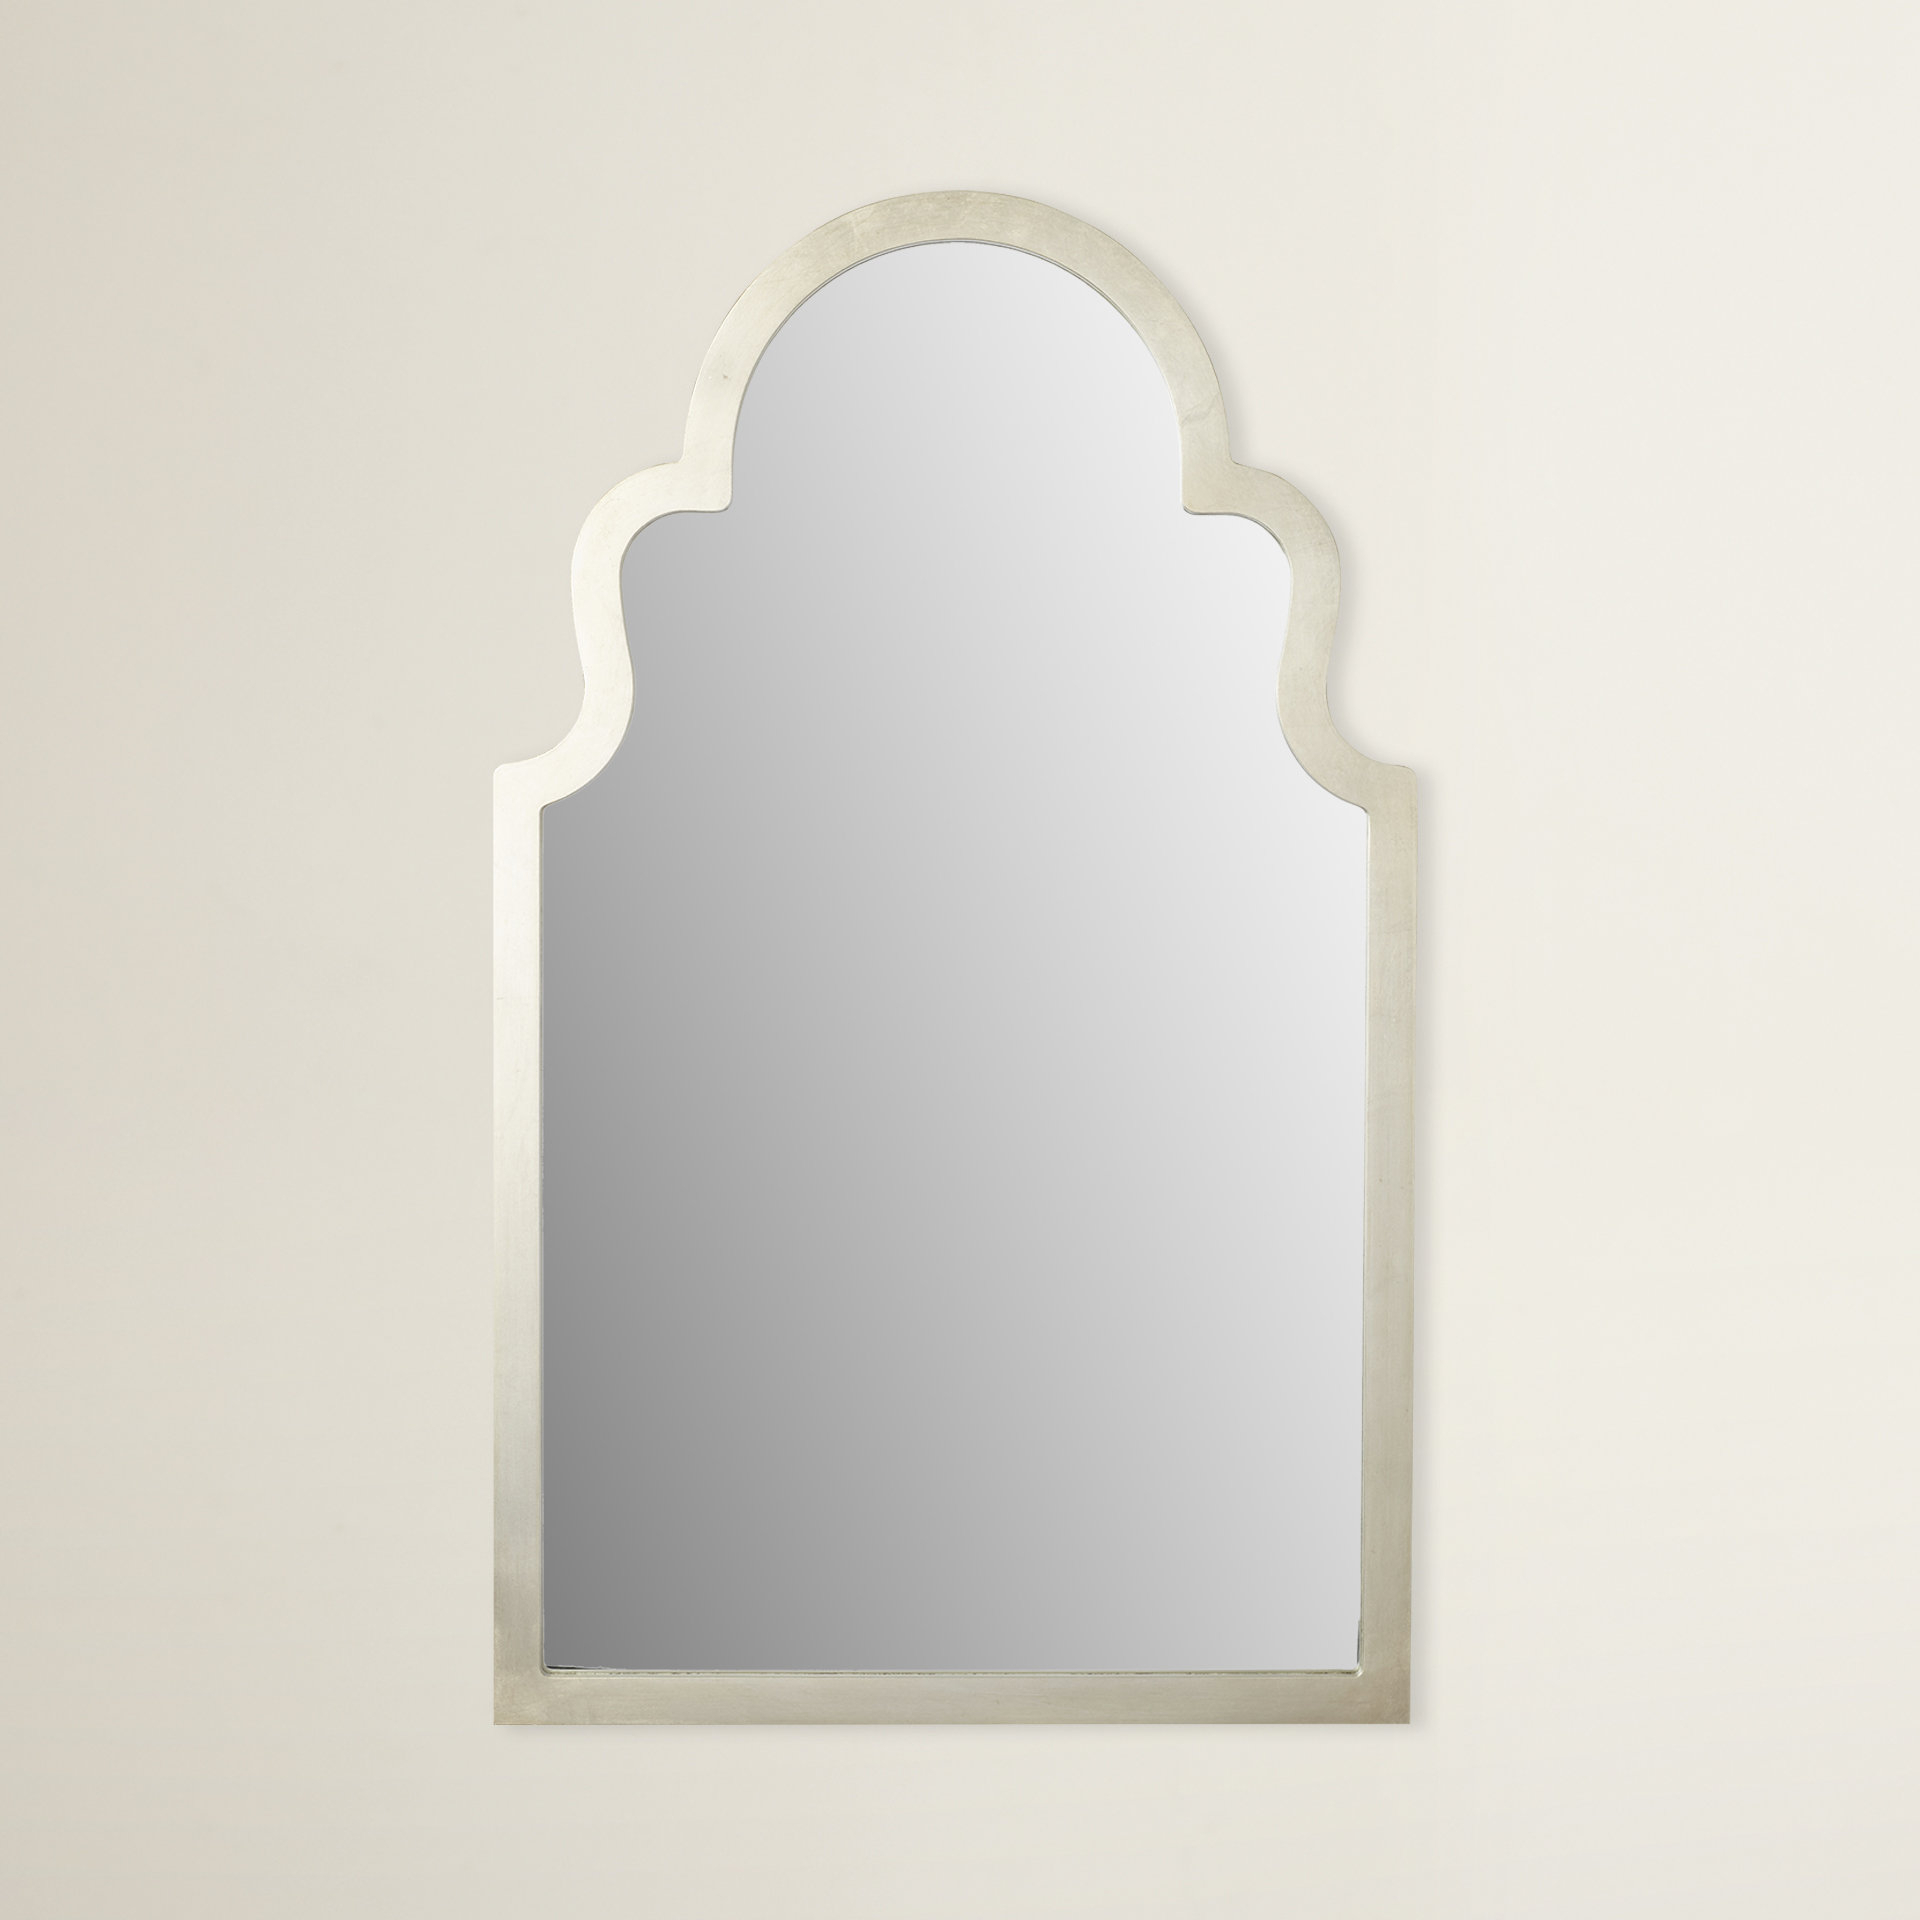 Arch Top Vertical Wall Mirror in Arch Vertical Wall Mirrors (Image 7 of 30)